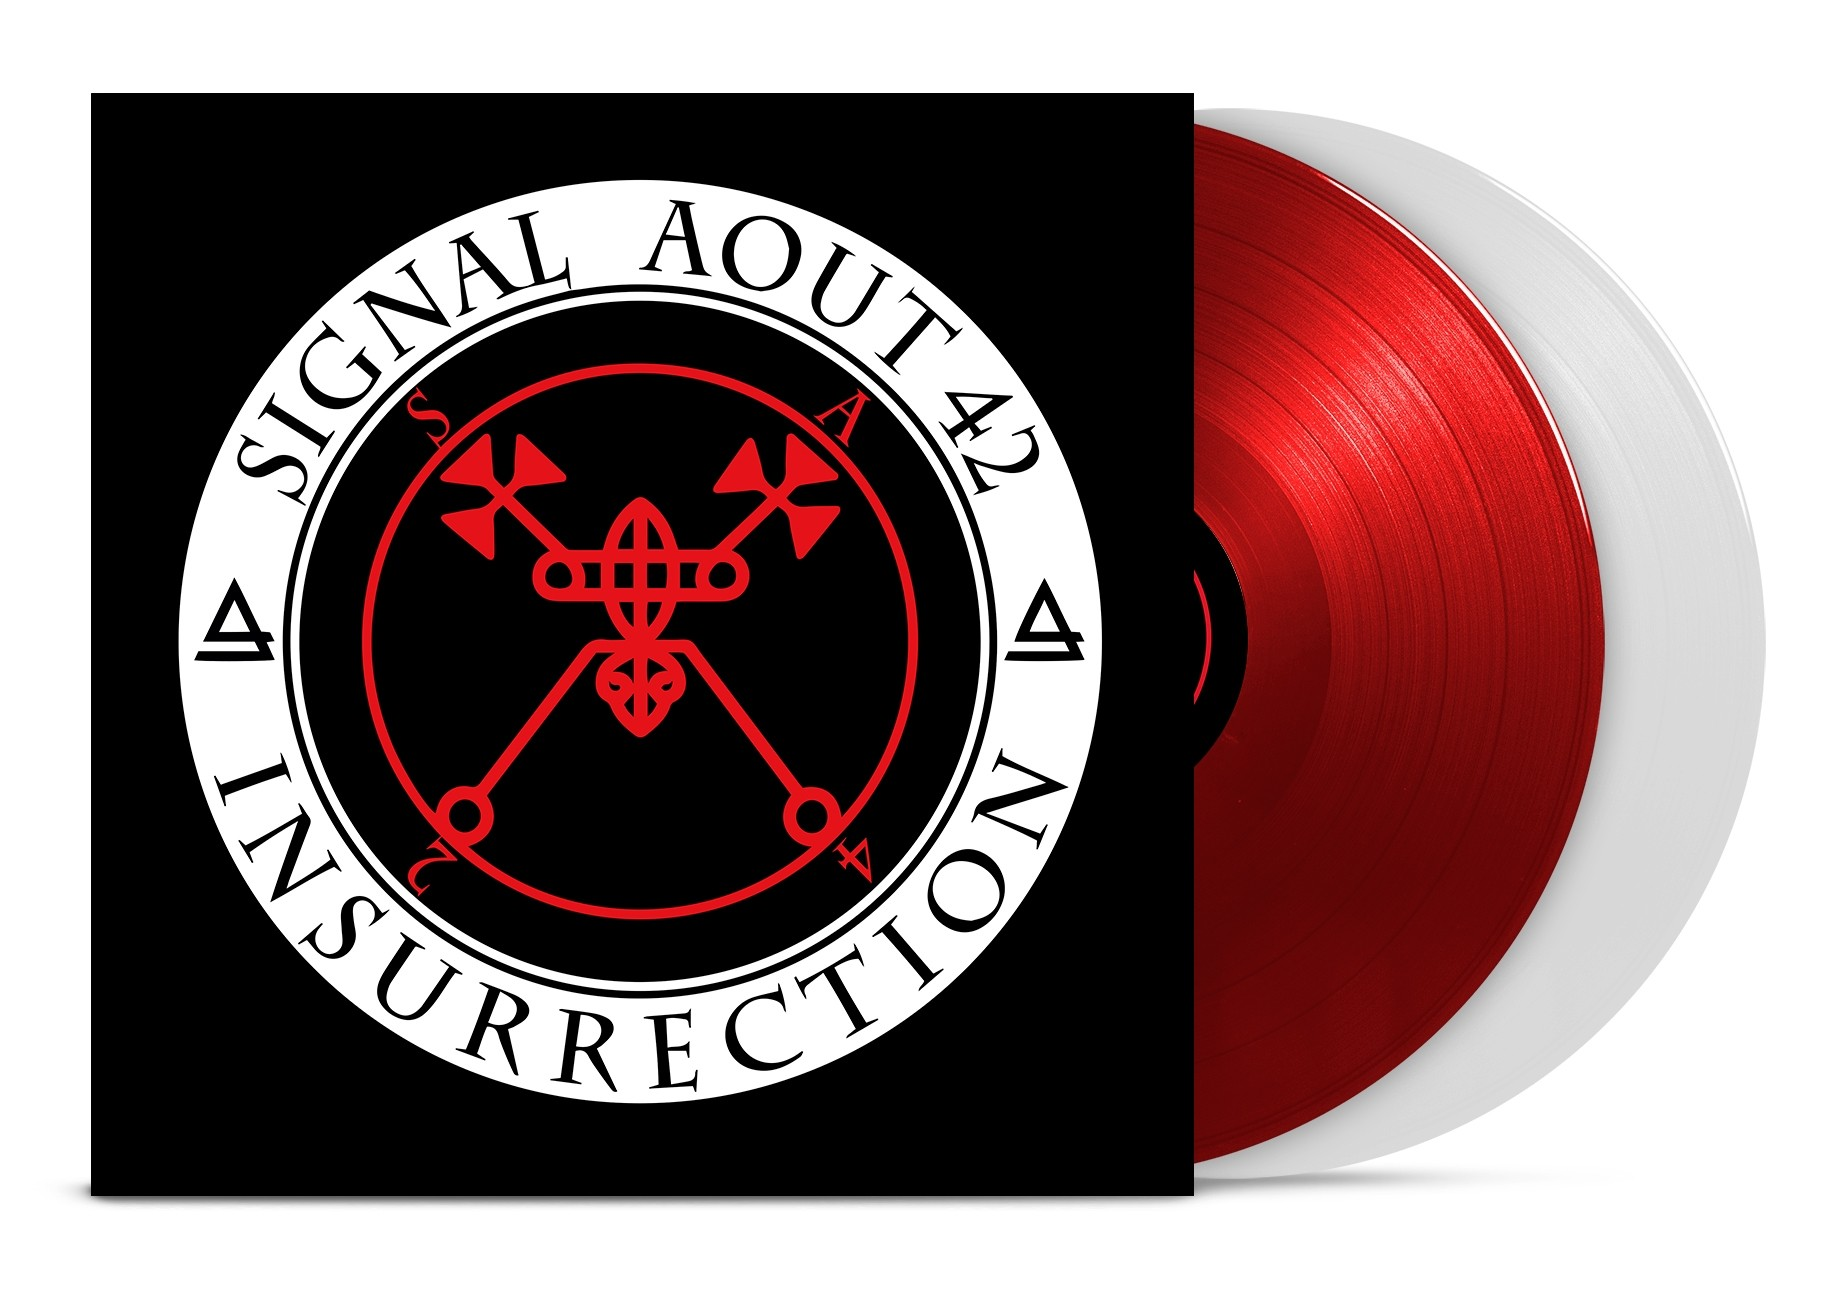 Signal Aout 42 - Insurrection (Limited Edition) - 2LP+CD